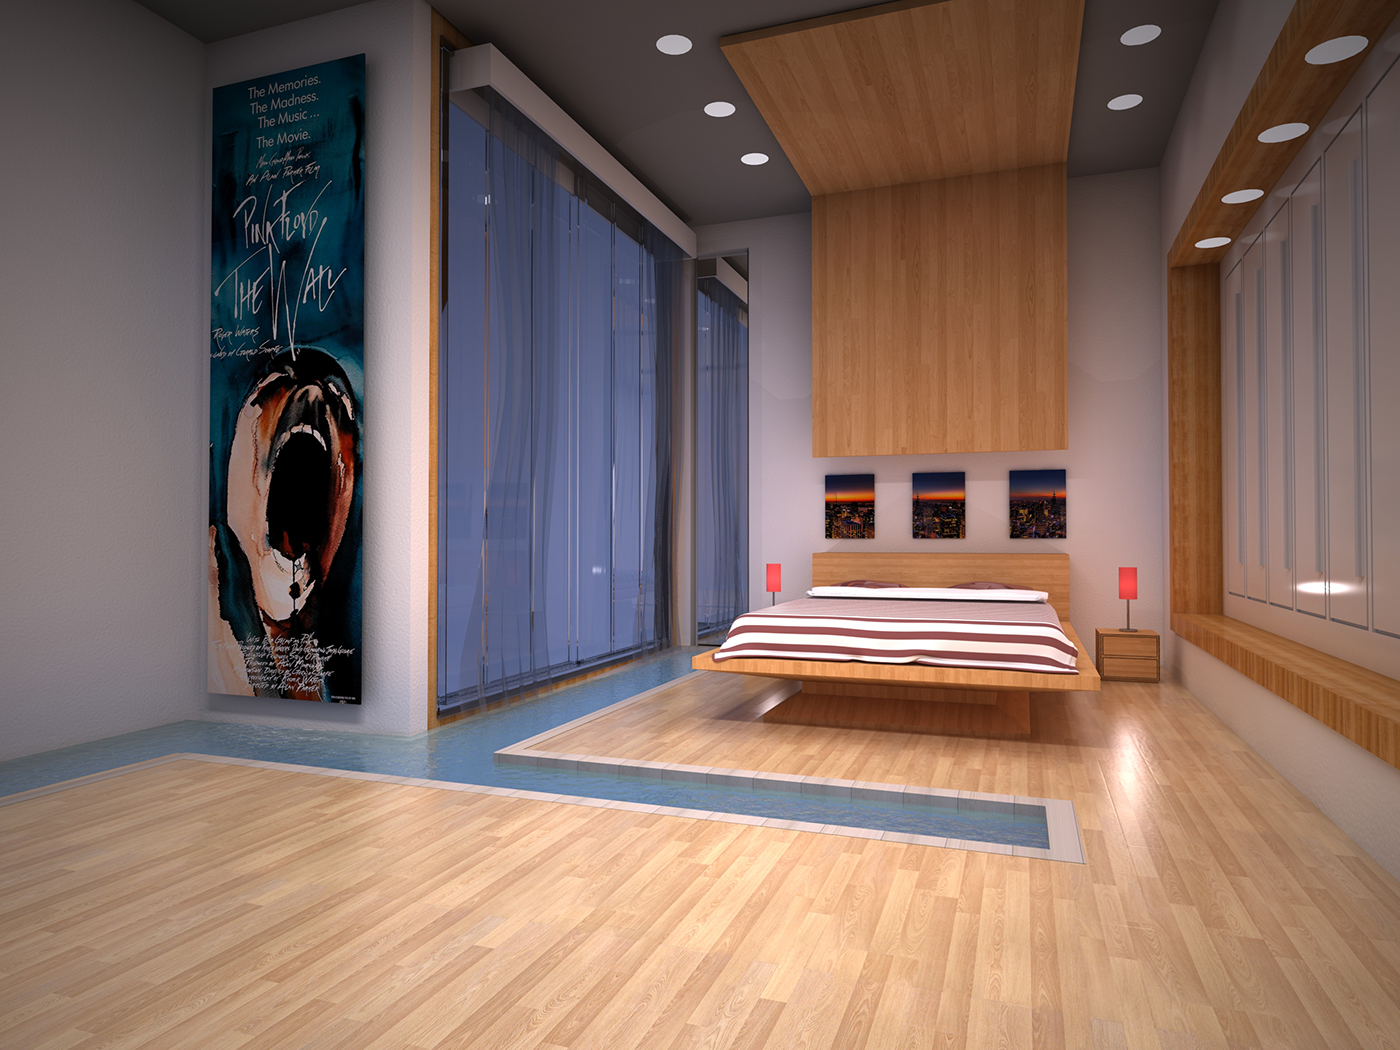 3D Modelling 3D model Render rendering 3ds 3D Studio Max graphic design Interior interno product Project material